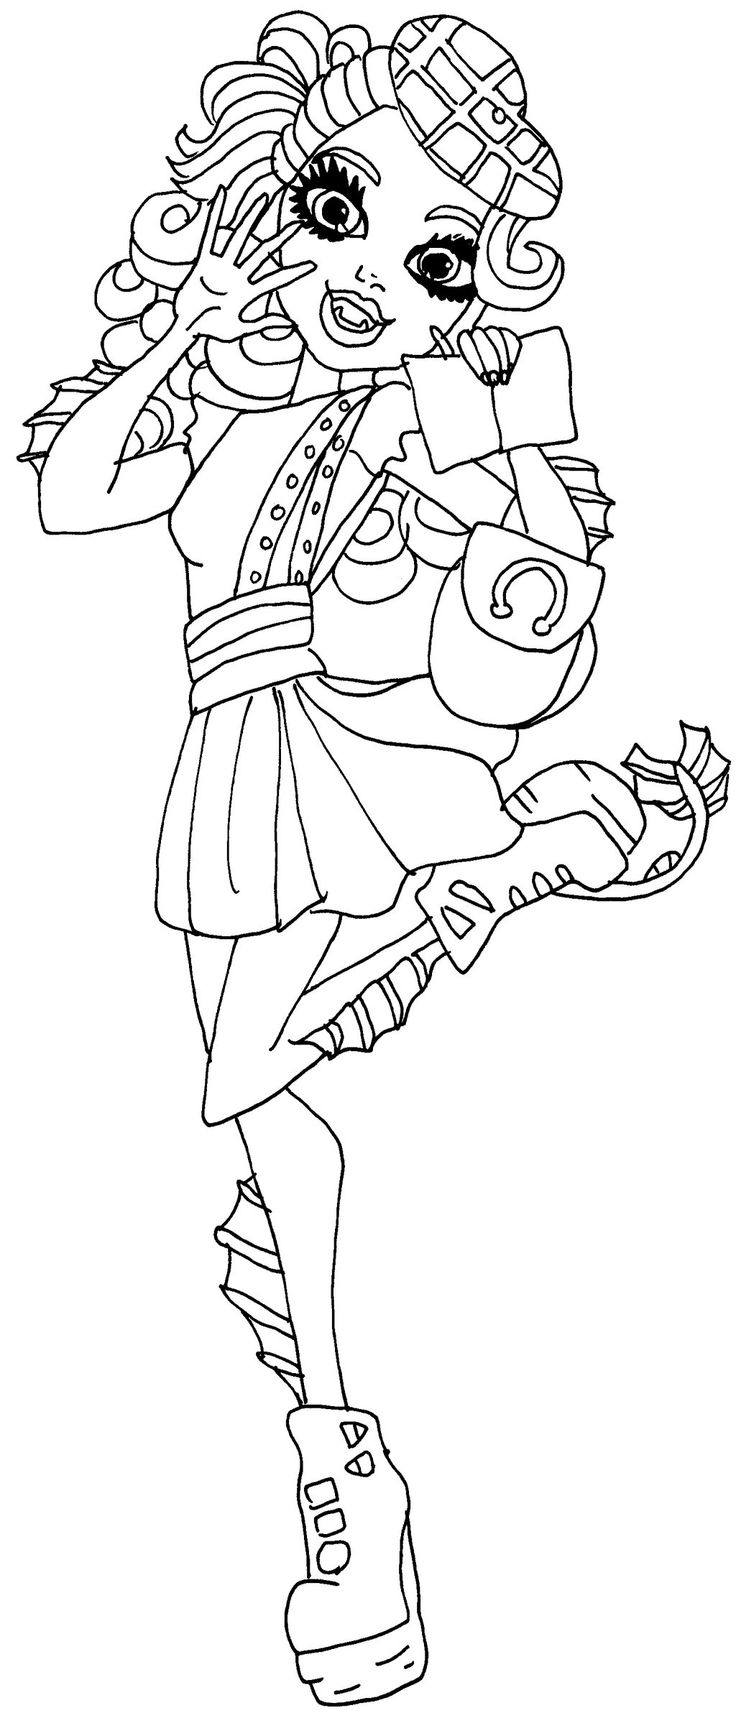 monster high coloring pages lorna mcnessie google search - Monster High Chibi Coloring Pages